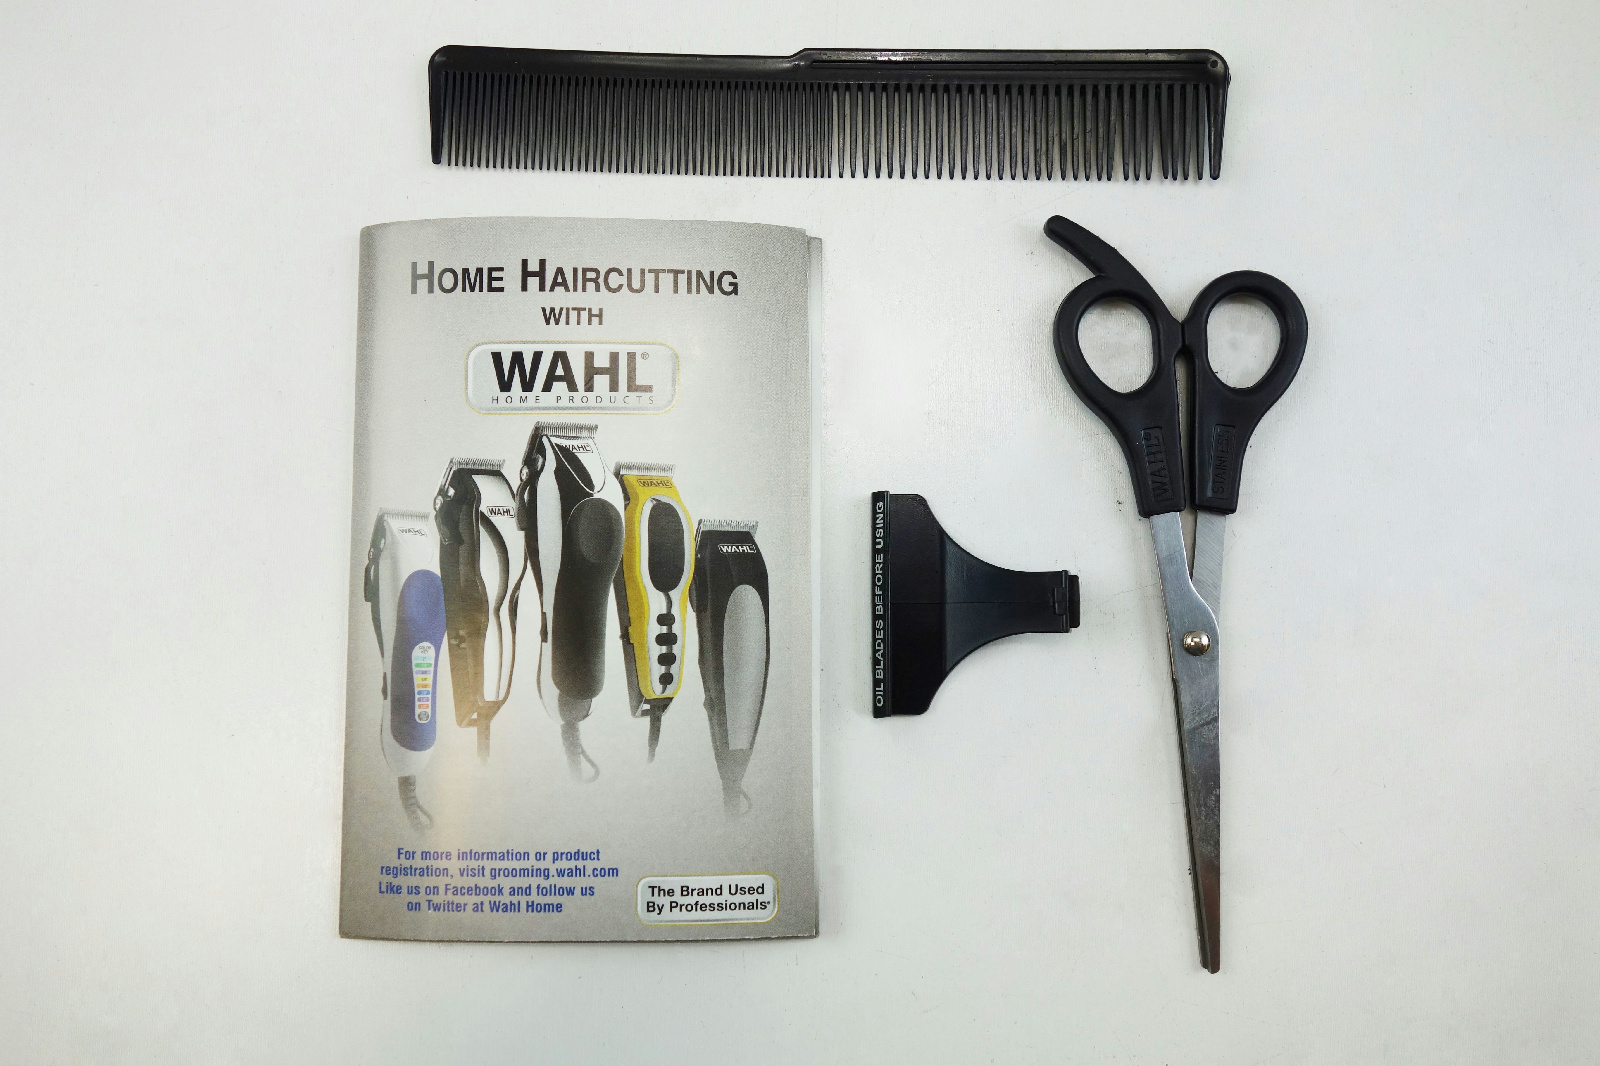 wahl home haircutting wahl deluxe home haircutting kit 79300 400 ebay 5675